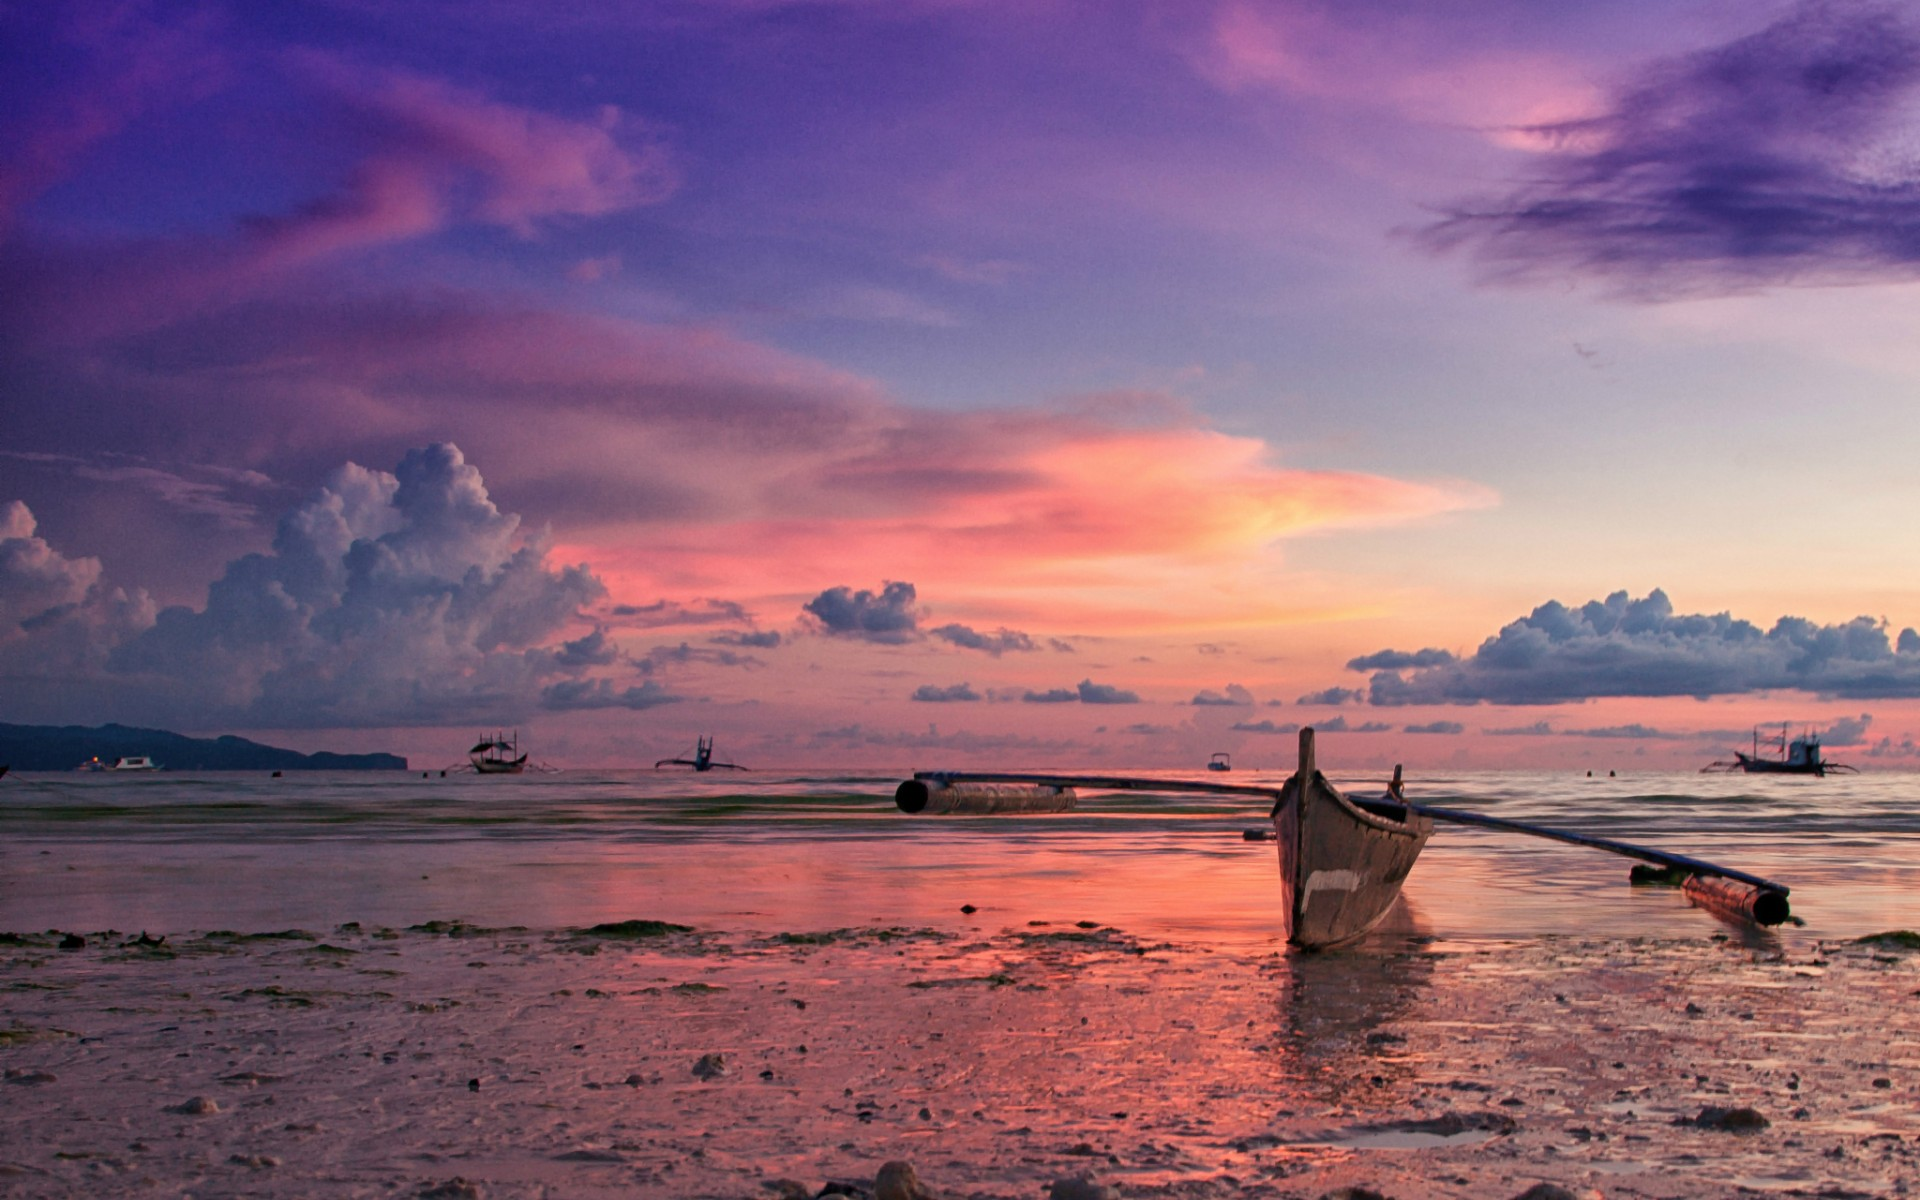 philippines island ocean beach boat evening sunset sky clouds